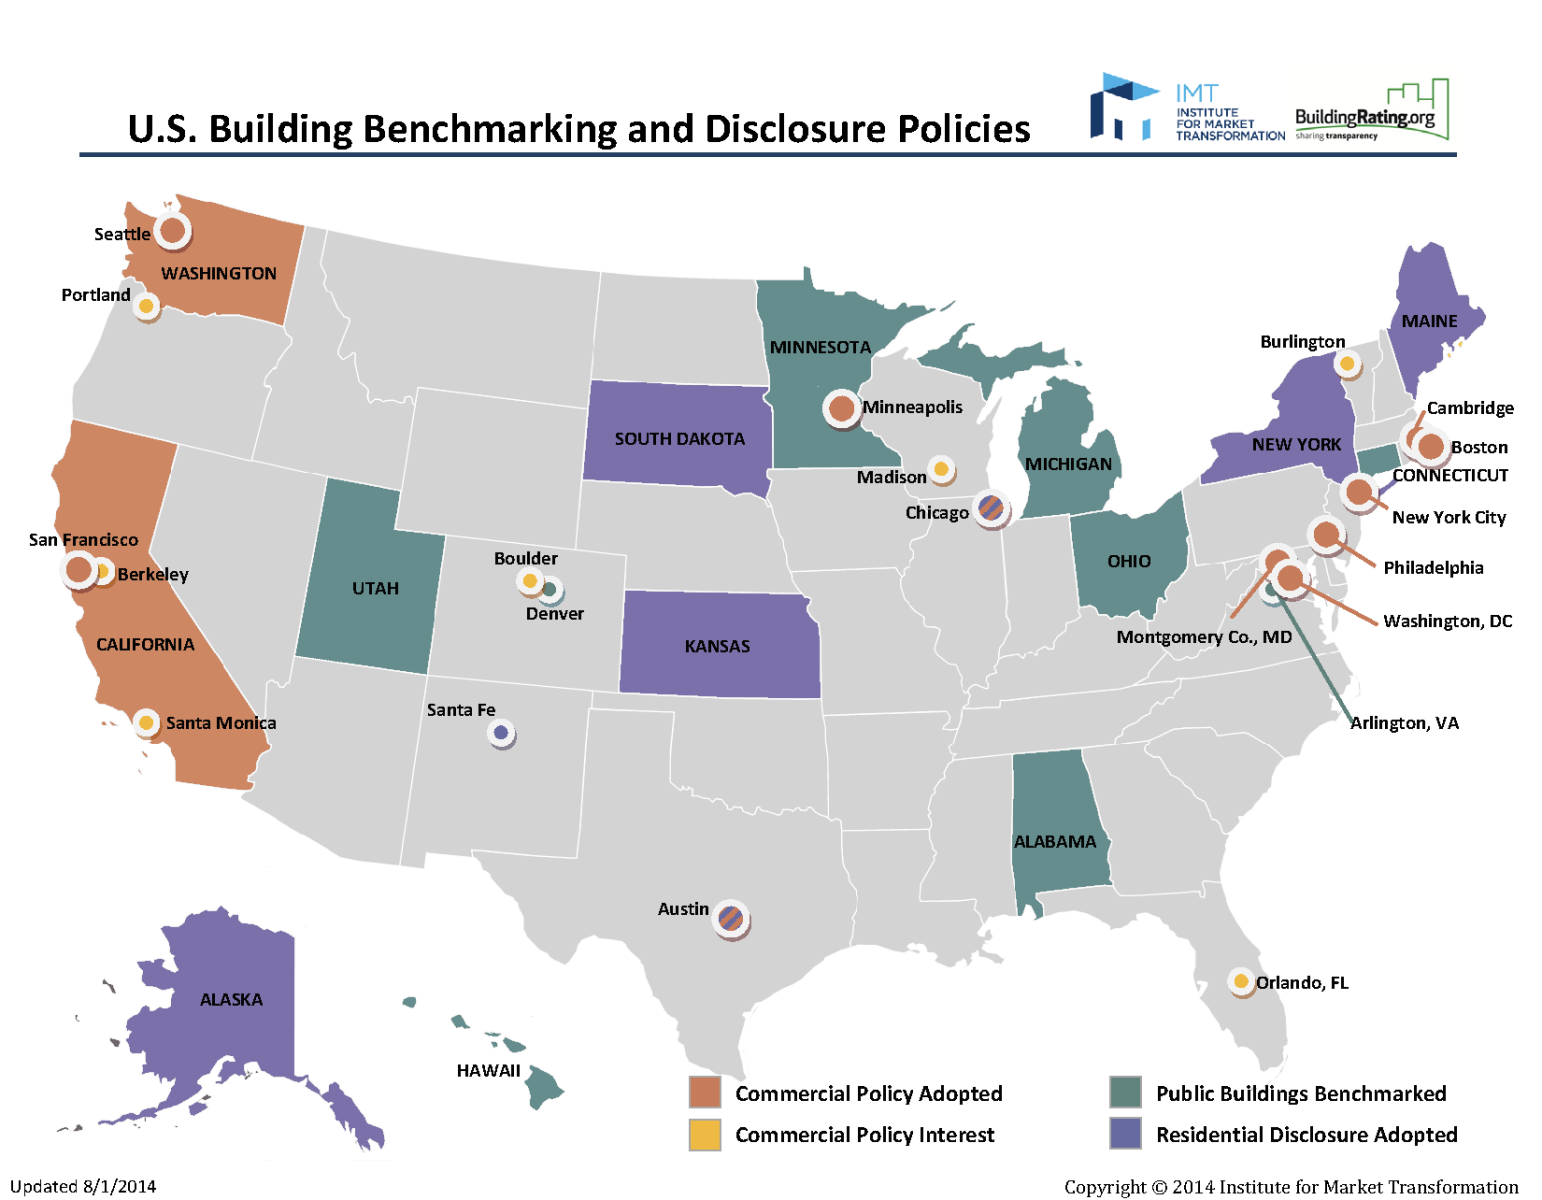 Image of map of U.S. states, cities and counties that have building benchmarking and disclosure policies as of August 8, 2014.